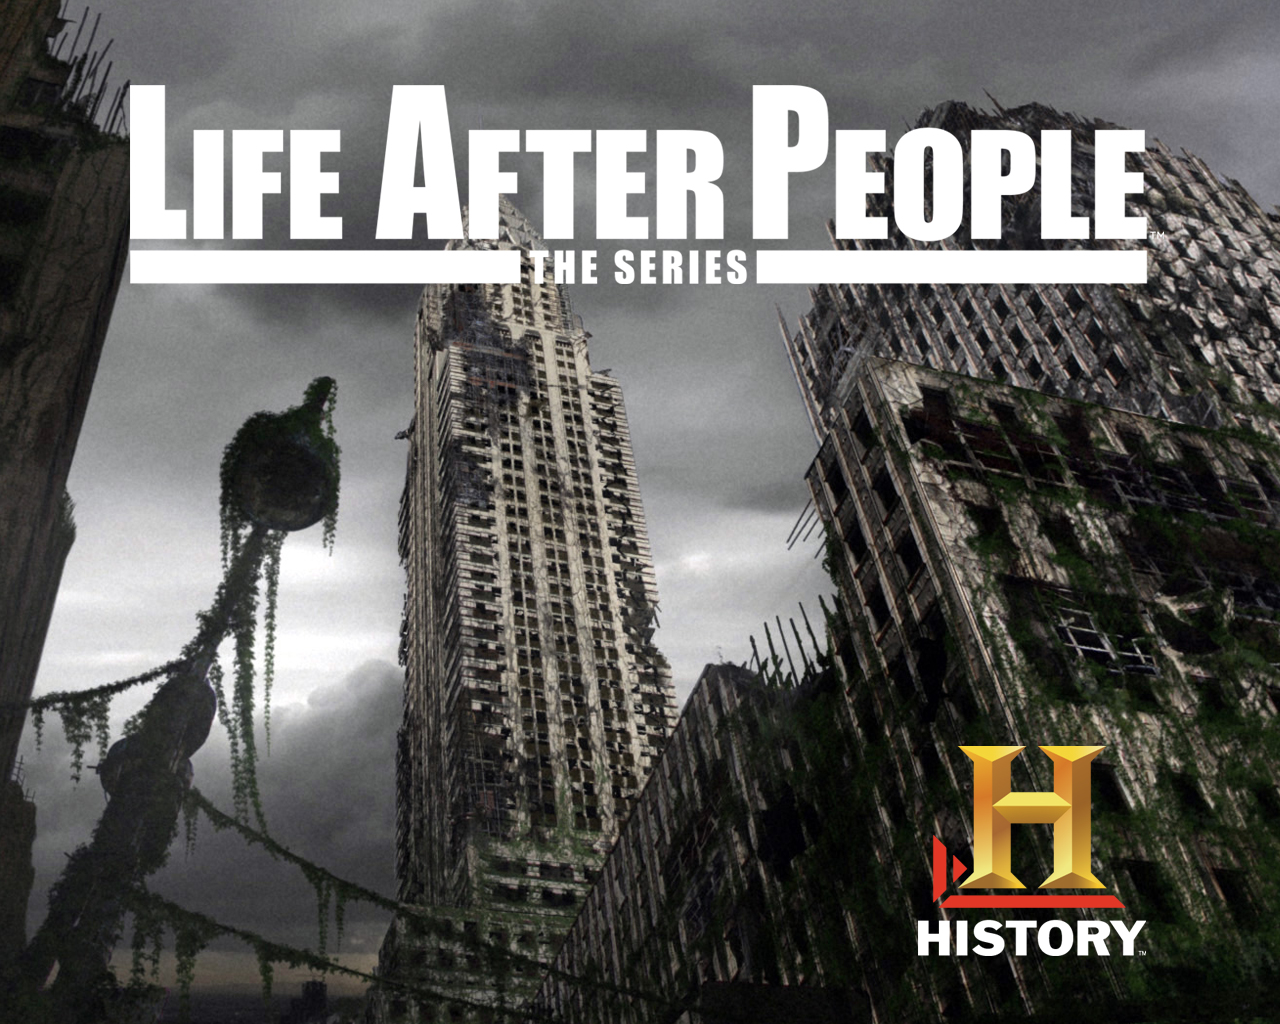 Life after people episodes